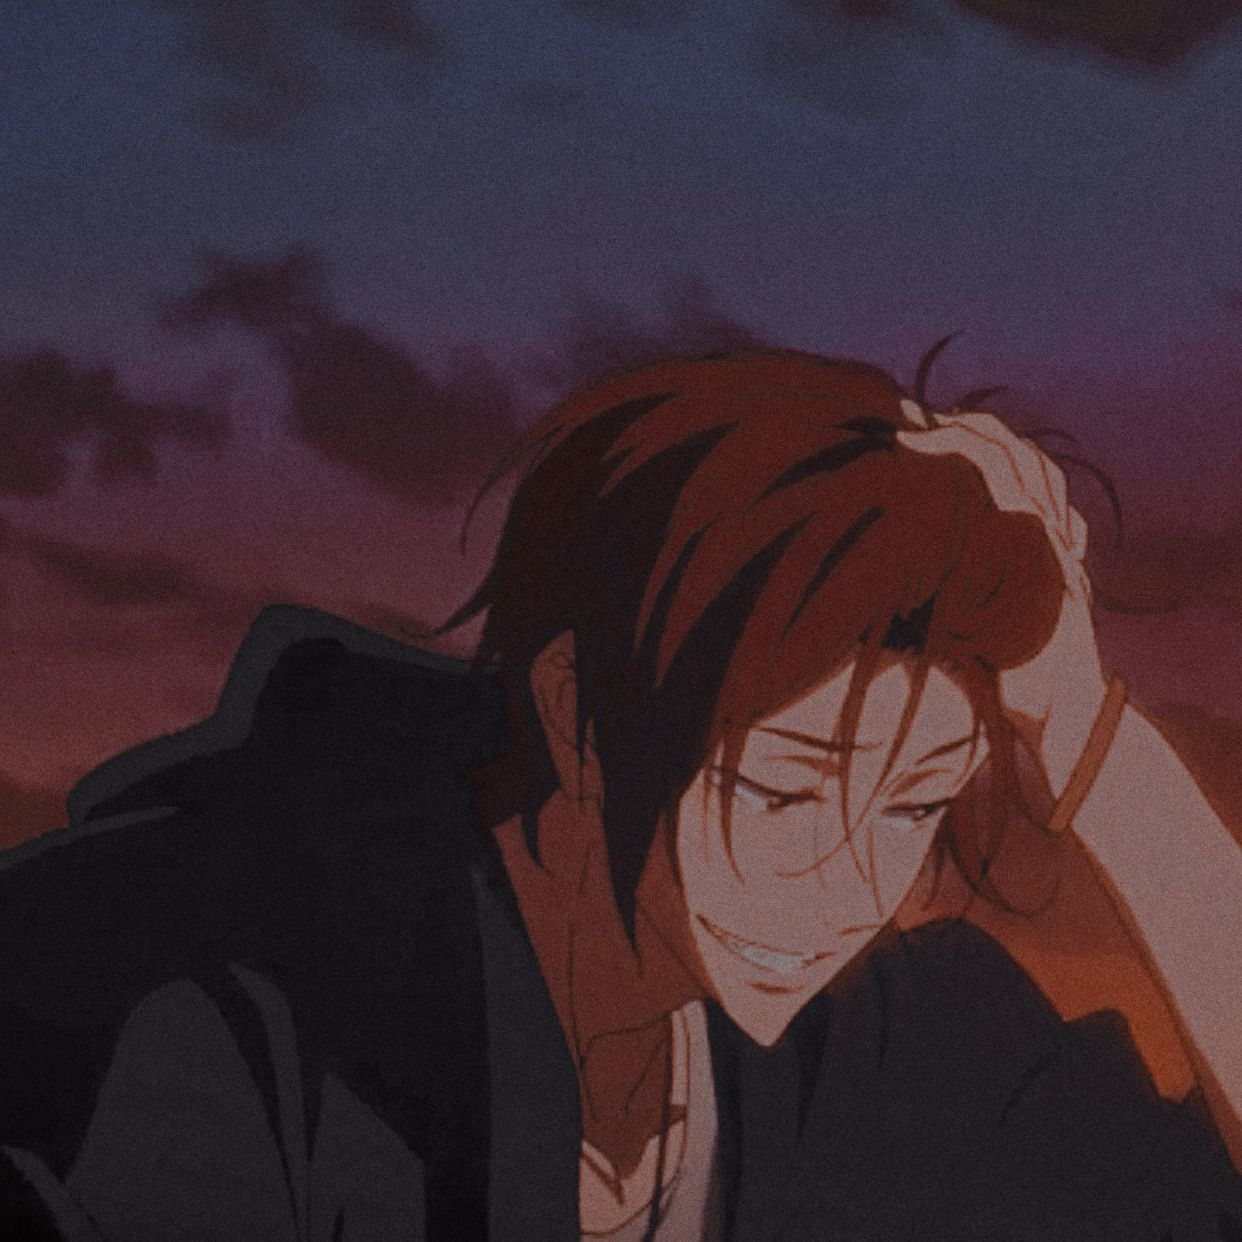 Rin Matsuoka In 2020 Free Anime Anime Maid Aesthetic Anime ''i'll show you a sight you've never seen before!'' pinterest